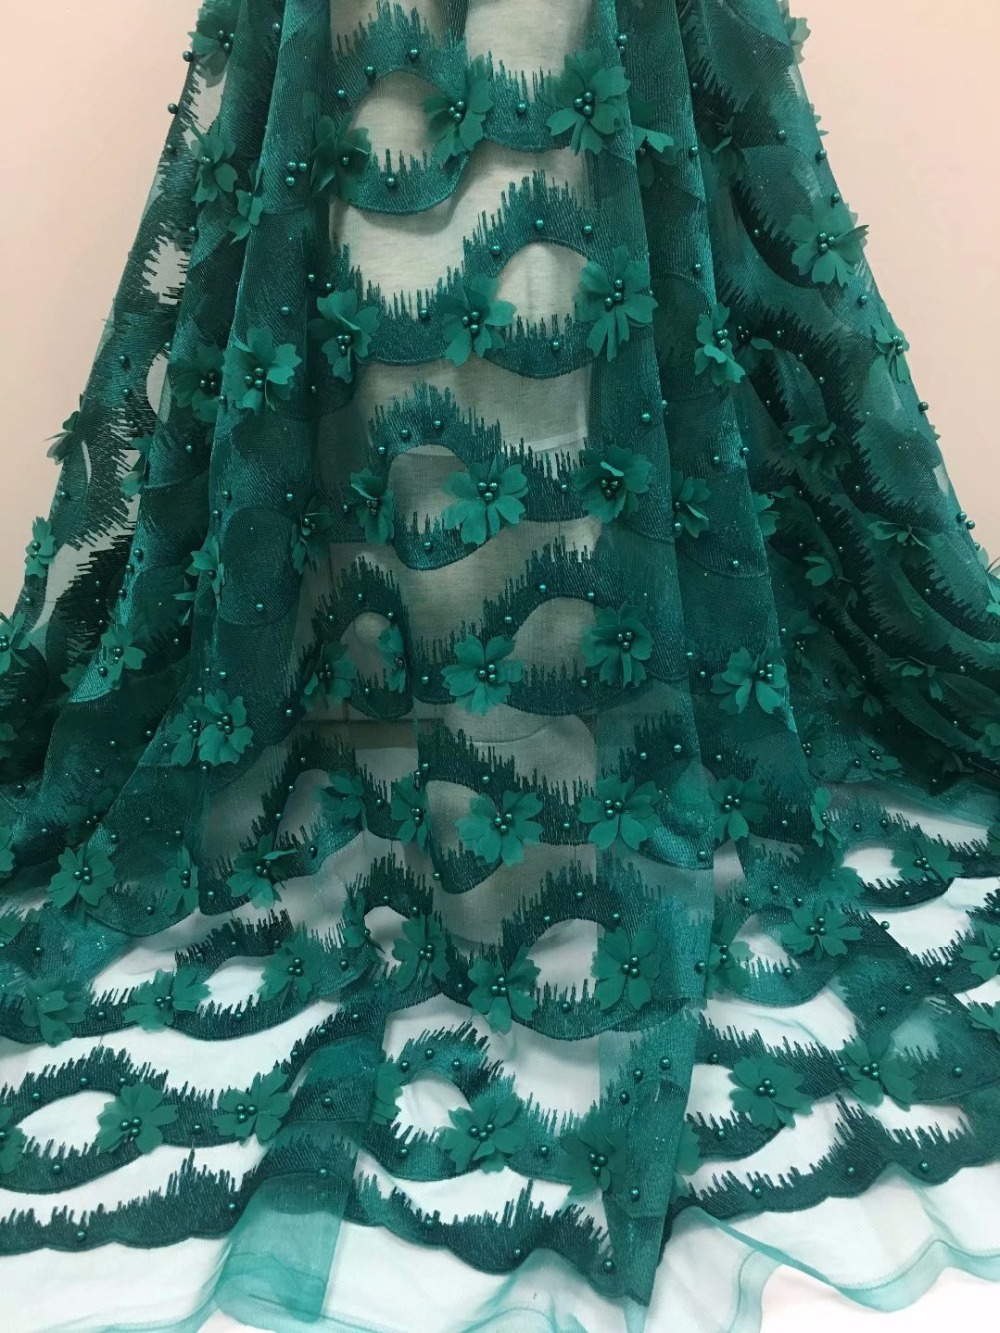 Nigerian Lace Fabrics 2018 With Beaded High Quality African French 3D Net Lace Fabric Embroidered Tulle Mesh Lace Fabric Nigerian Lace Fabrics 2018 With Beaded High Quality African French 3D Net Lace Fabric Embroidered Tulle Mesh Lace Fabric